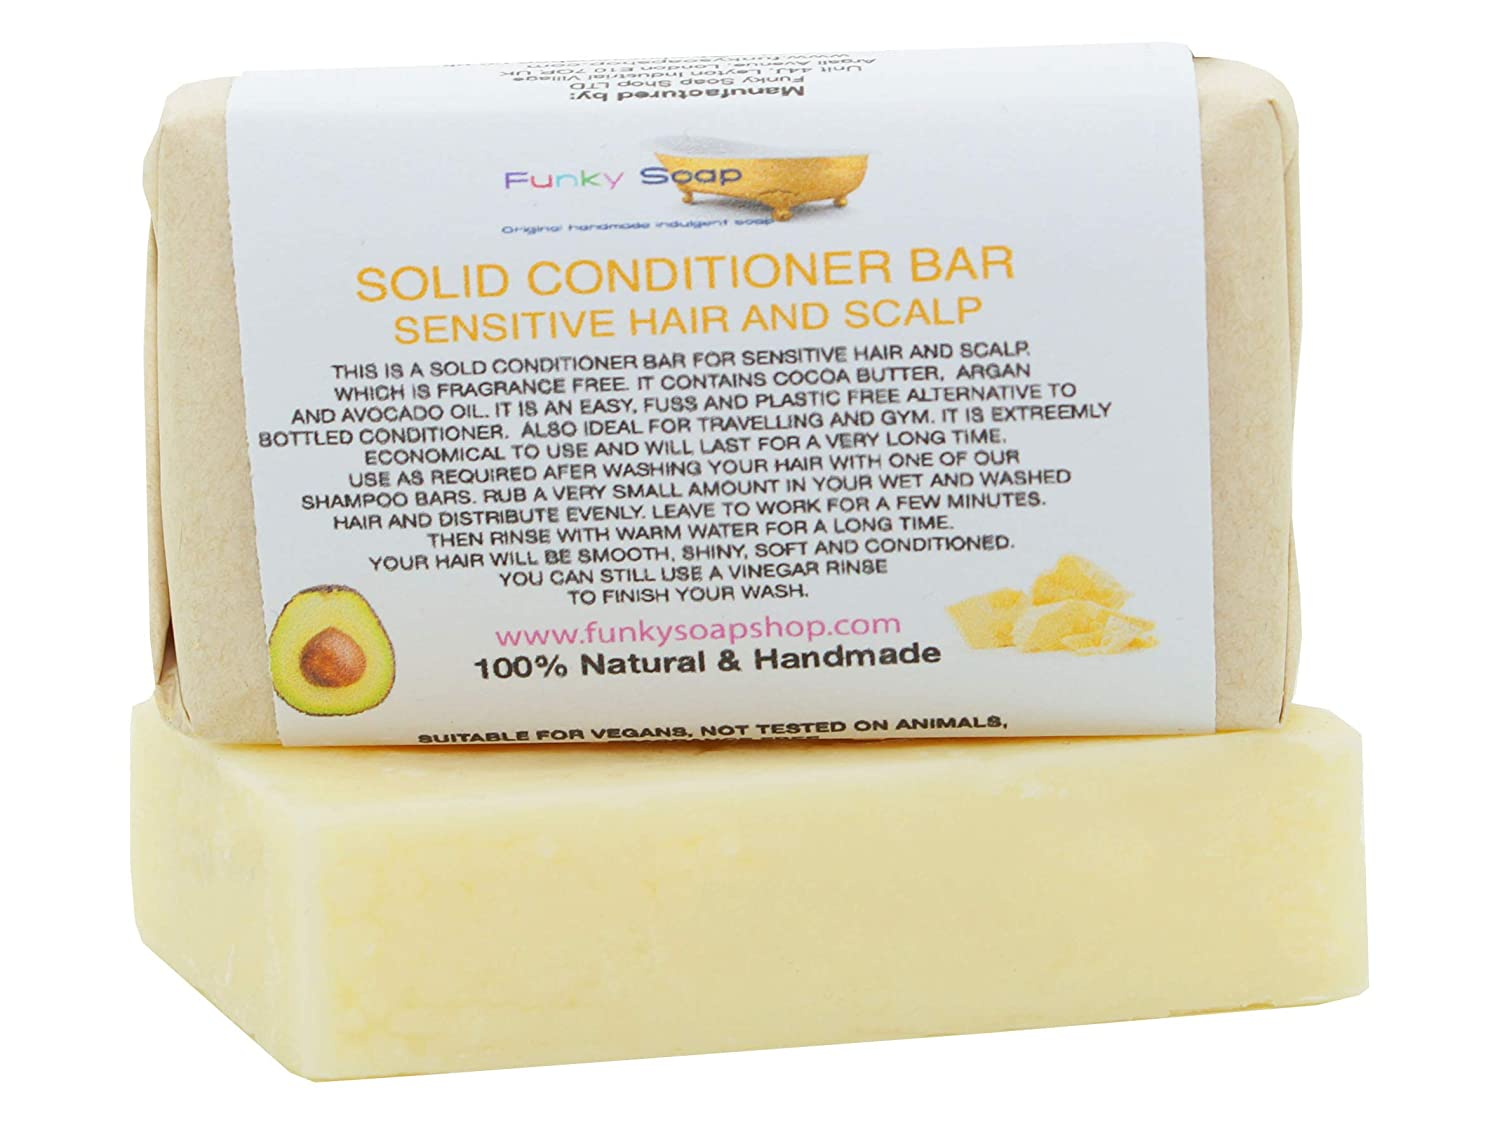 1x Solid Conditioner Bar for sensitive hair and scalp, 95g, Handmade and economical Funky Soap